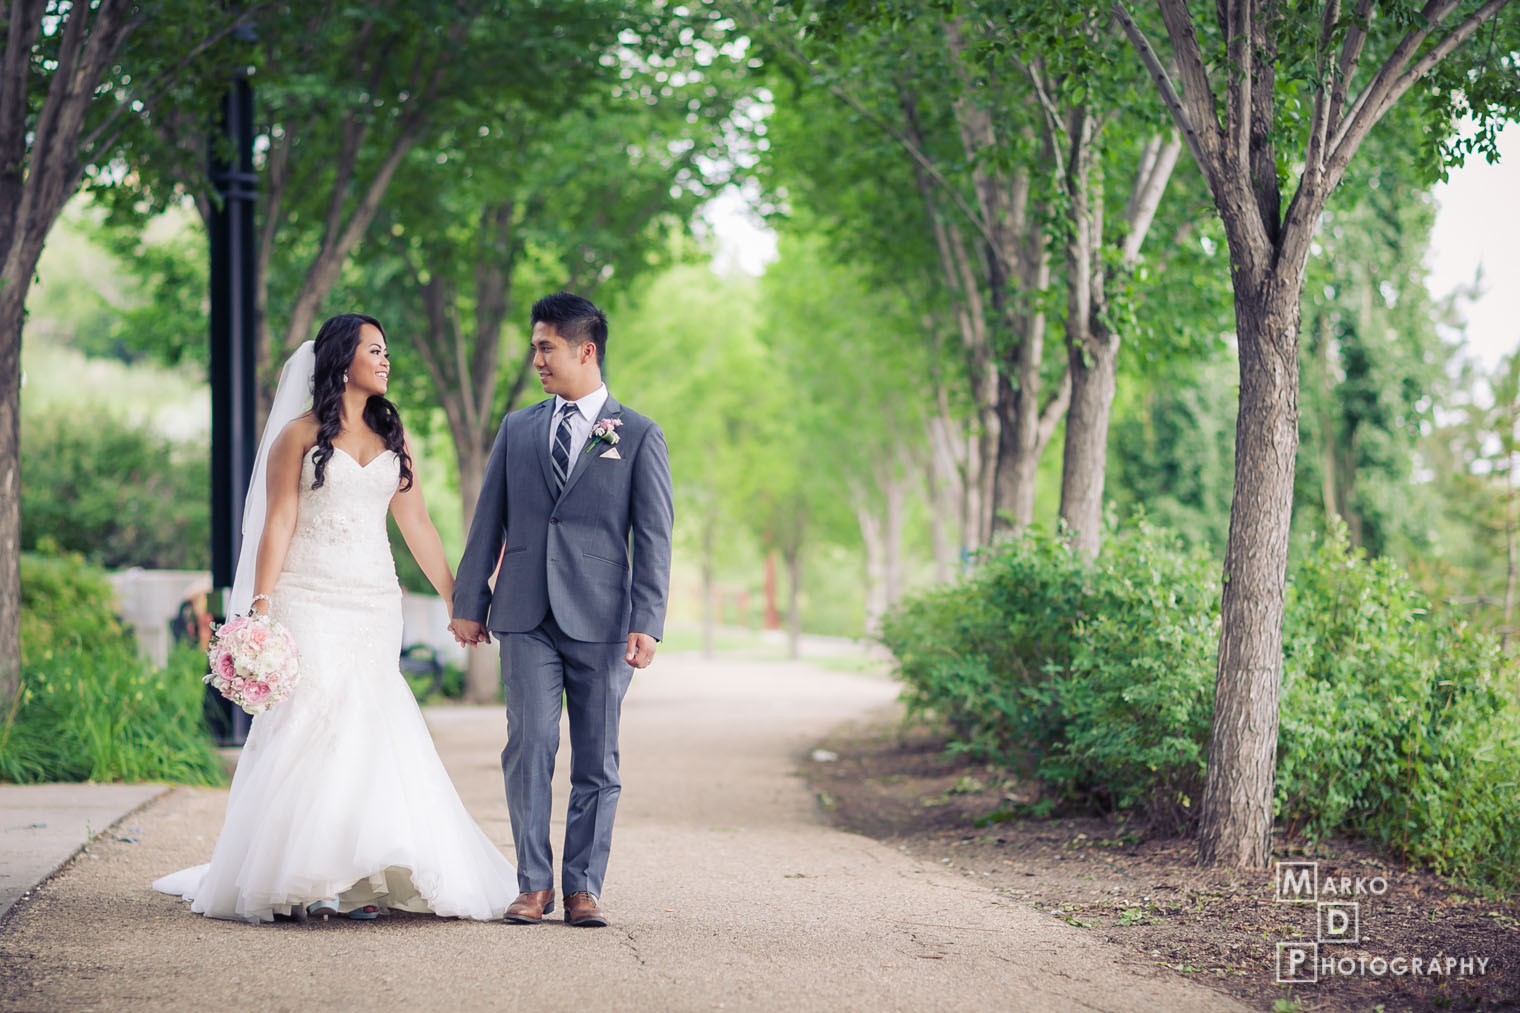 walking wedding edmonton photo